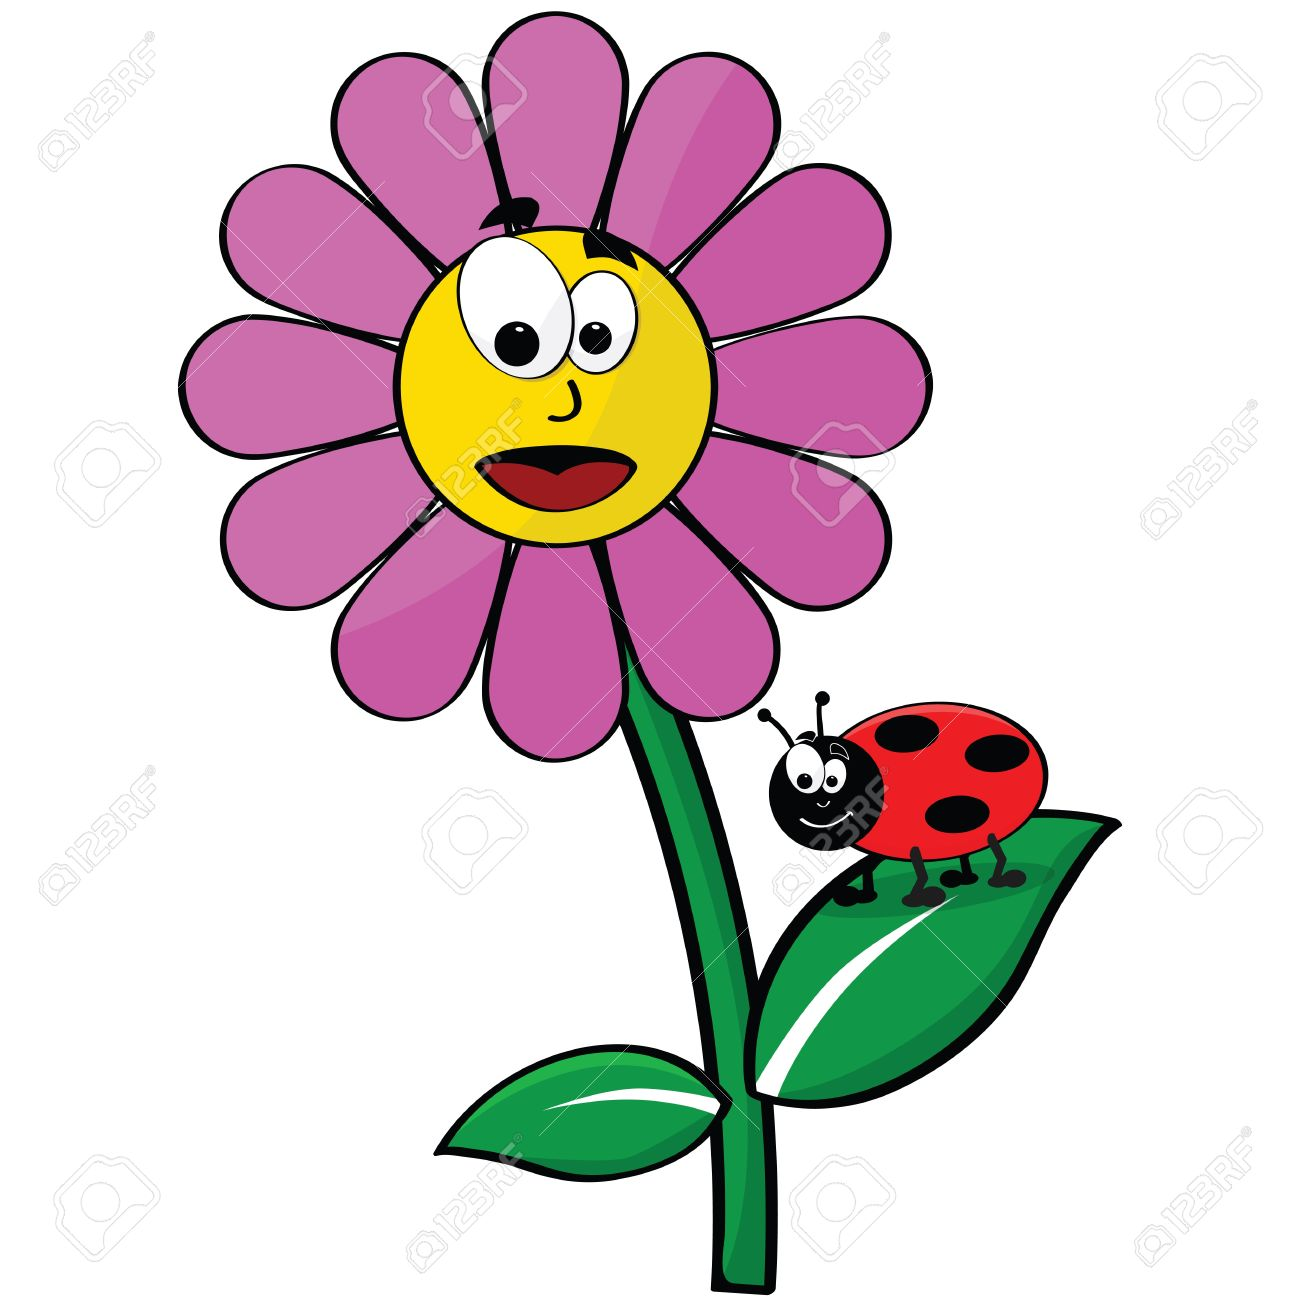 Cartoon illustration showing a happy flower and a ladybug - 9517543